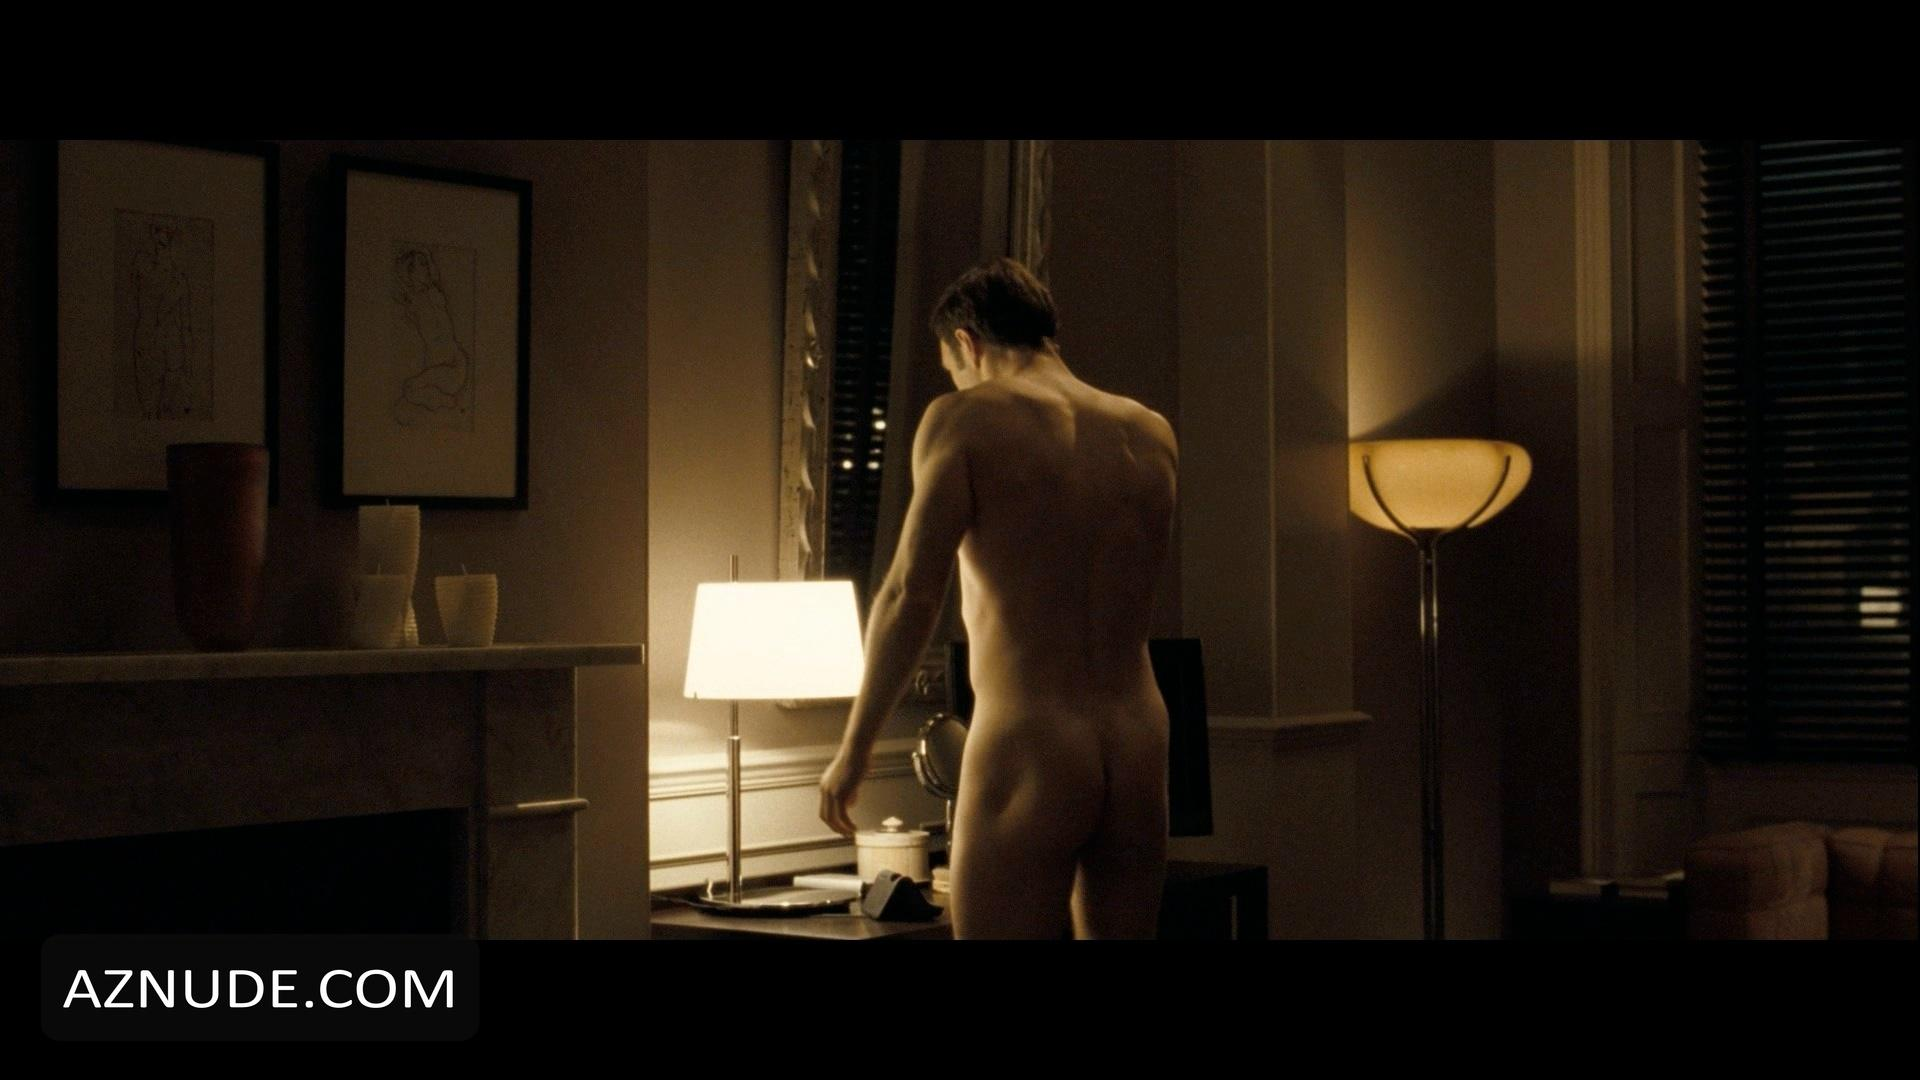 For David morrissey naked video